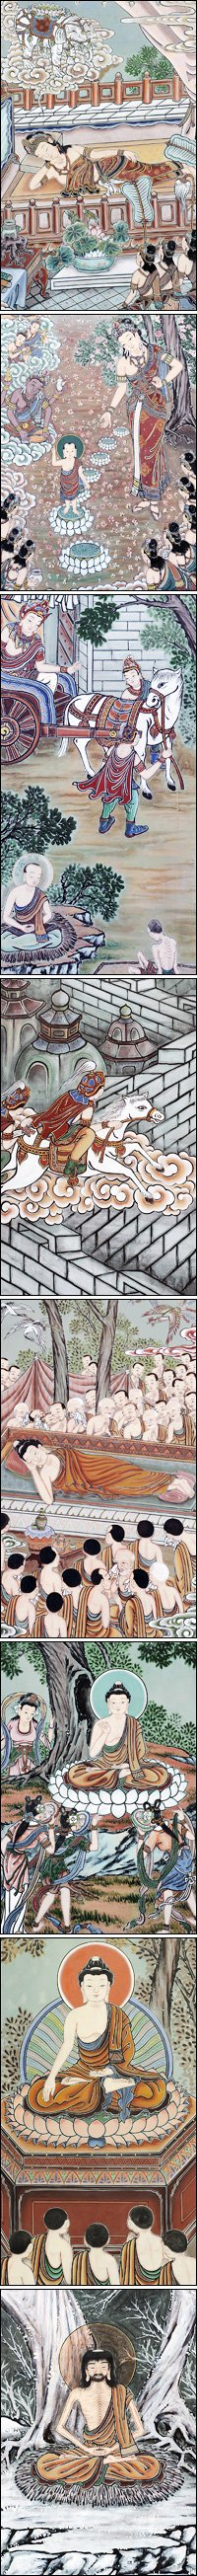 Palsang-do: eight scenes of Buddhas life